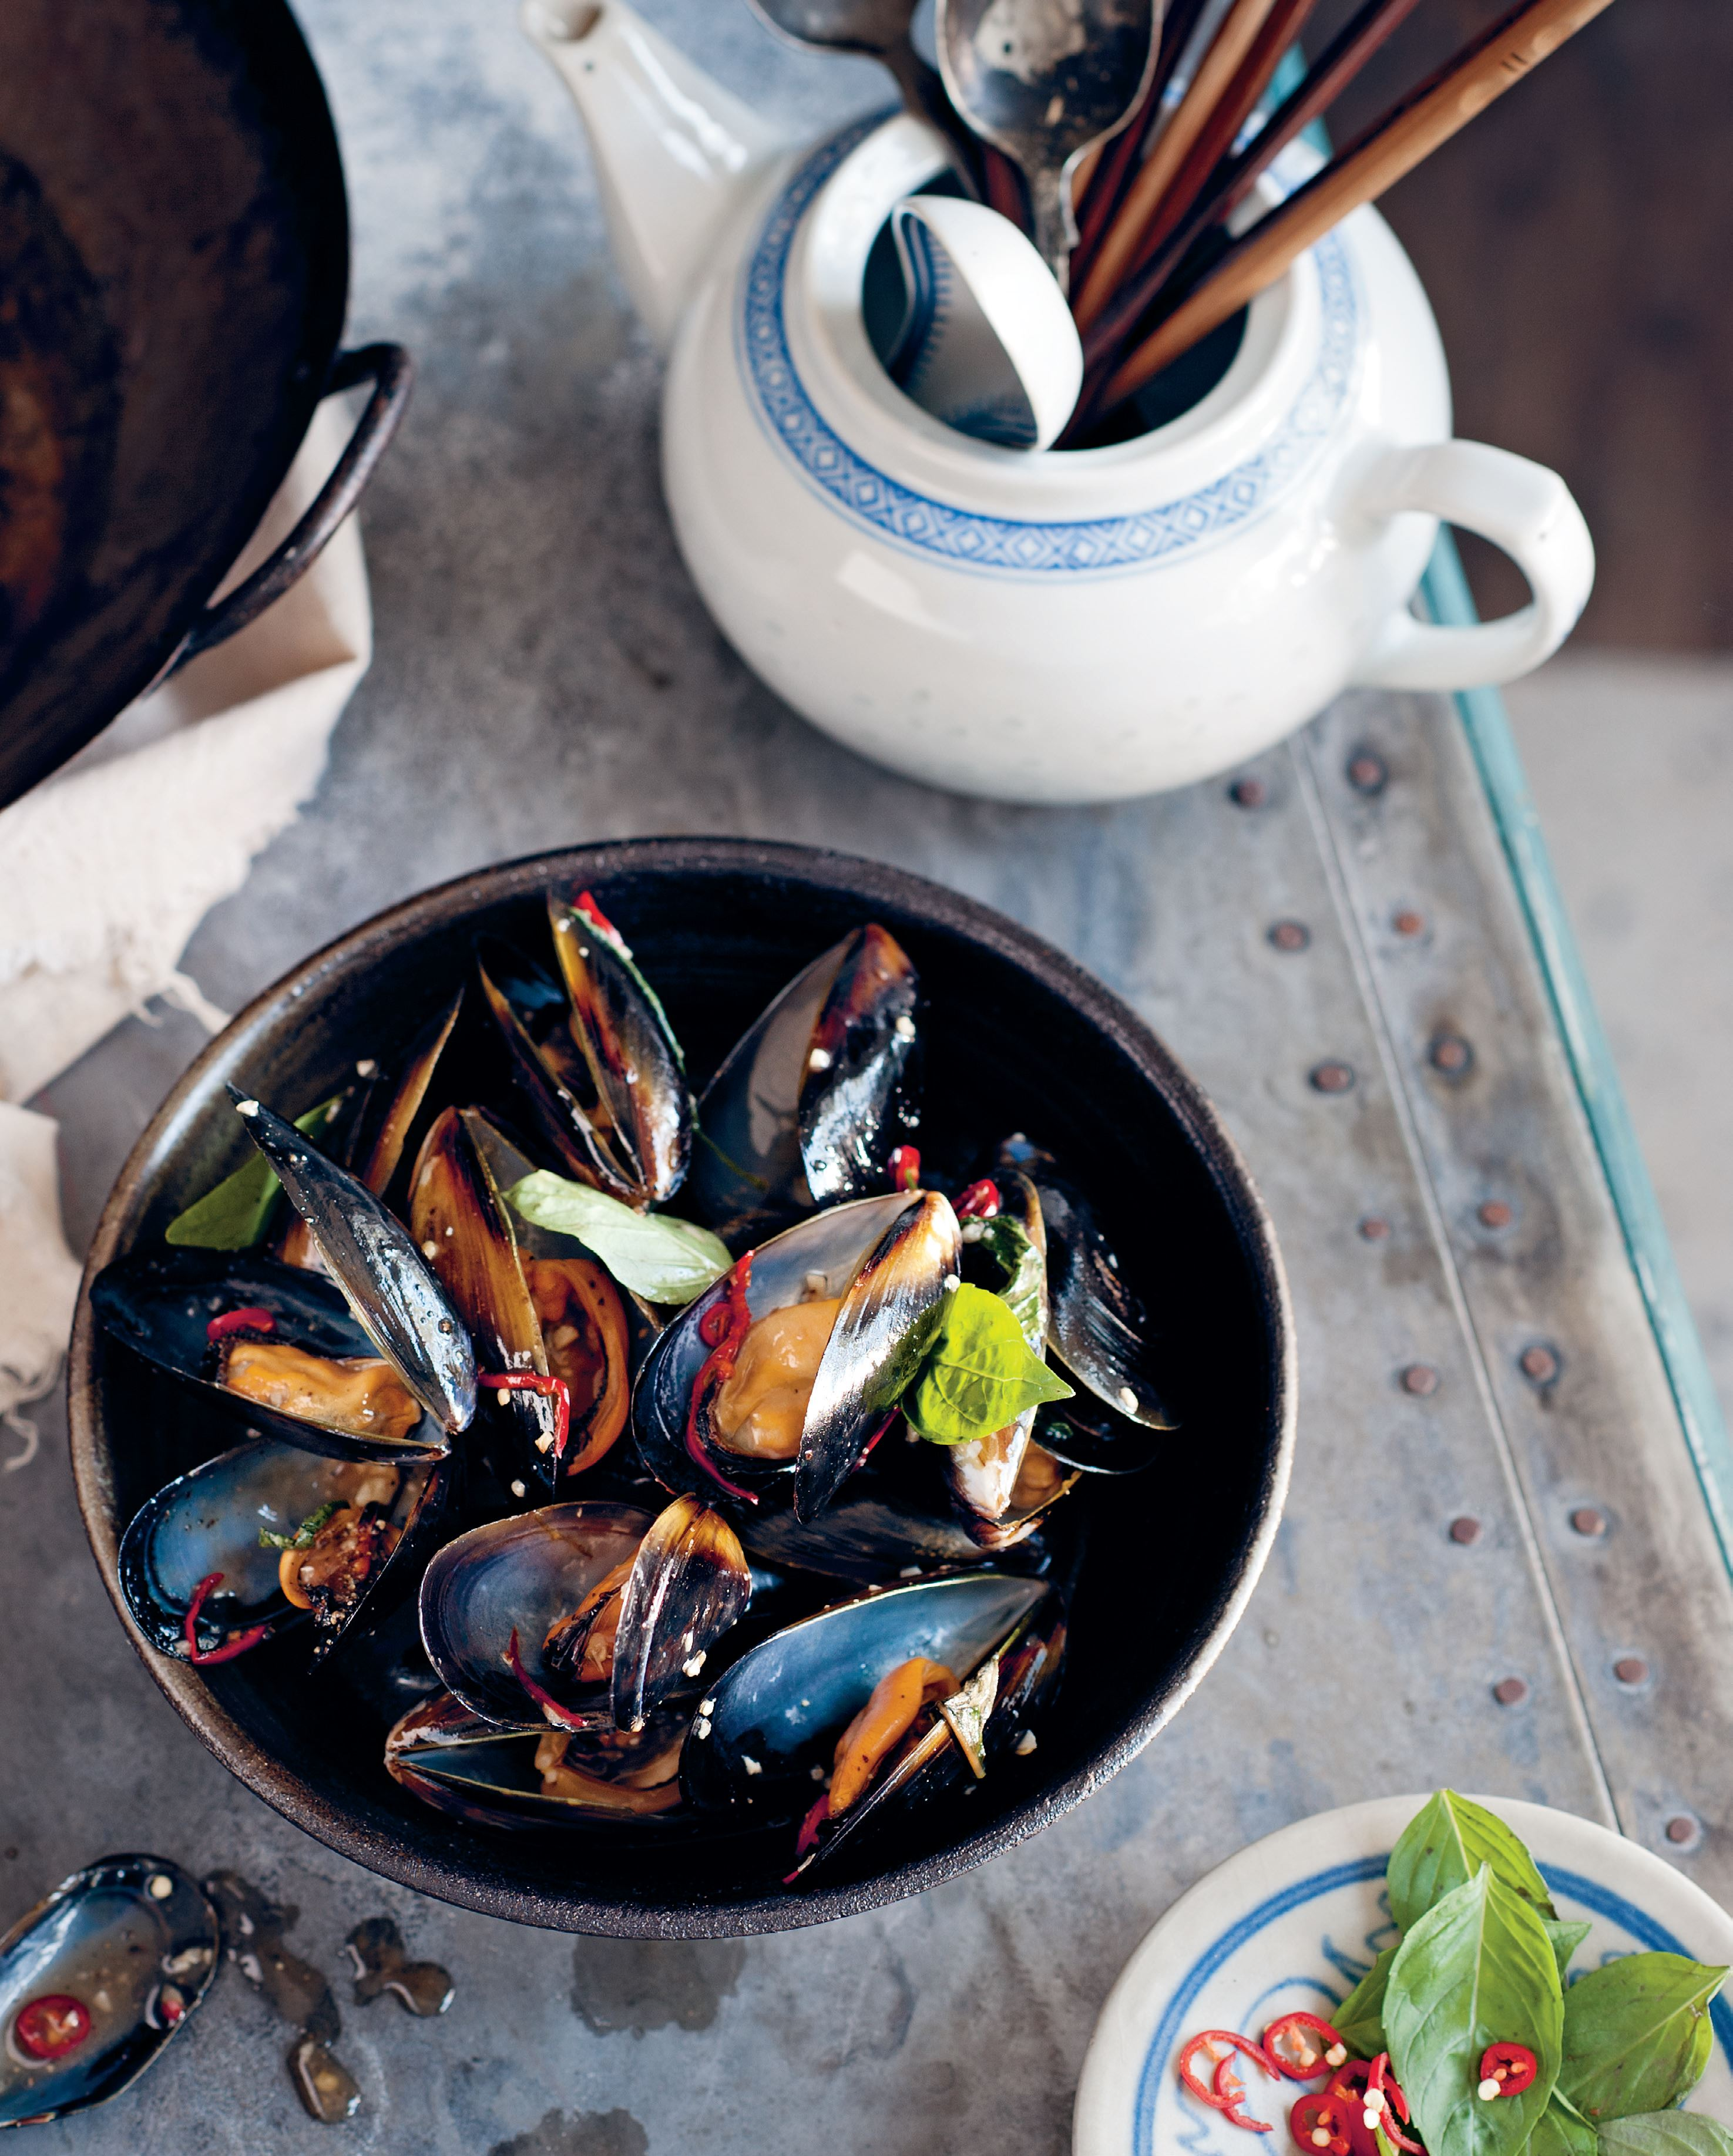 Black mussels with Asian basil and oyster sauce